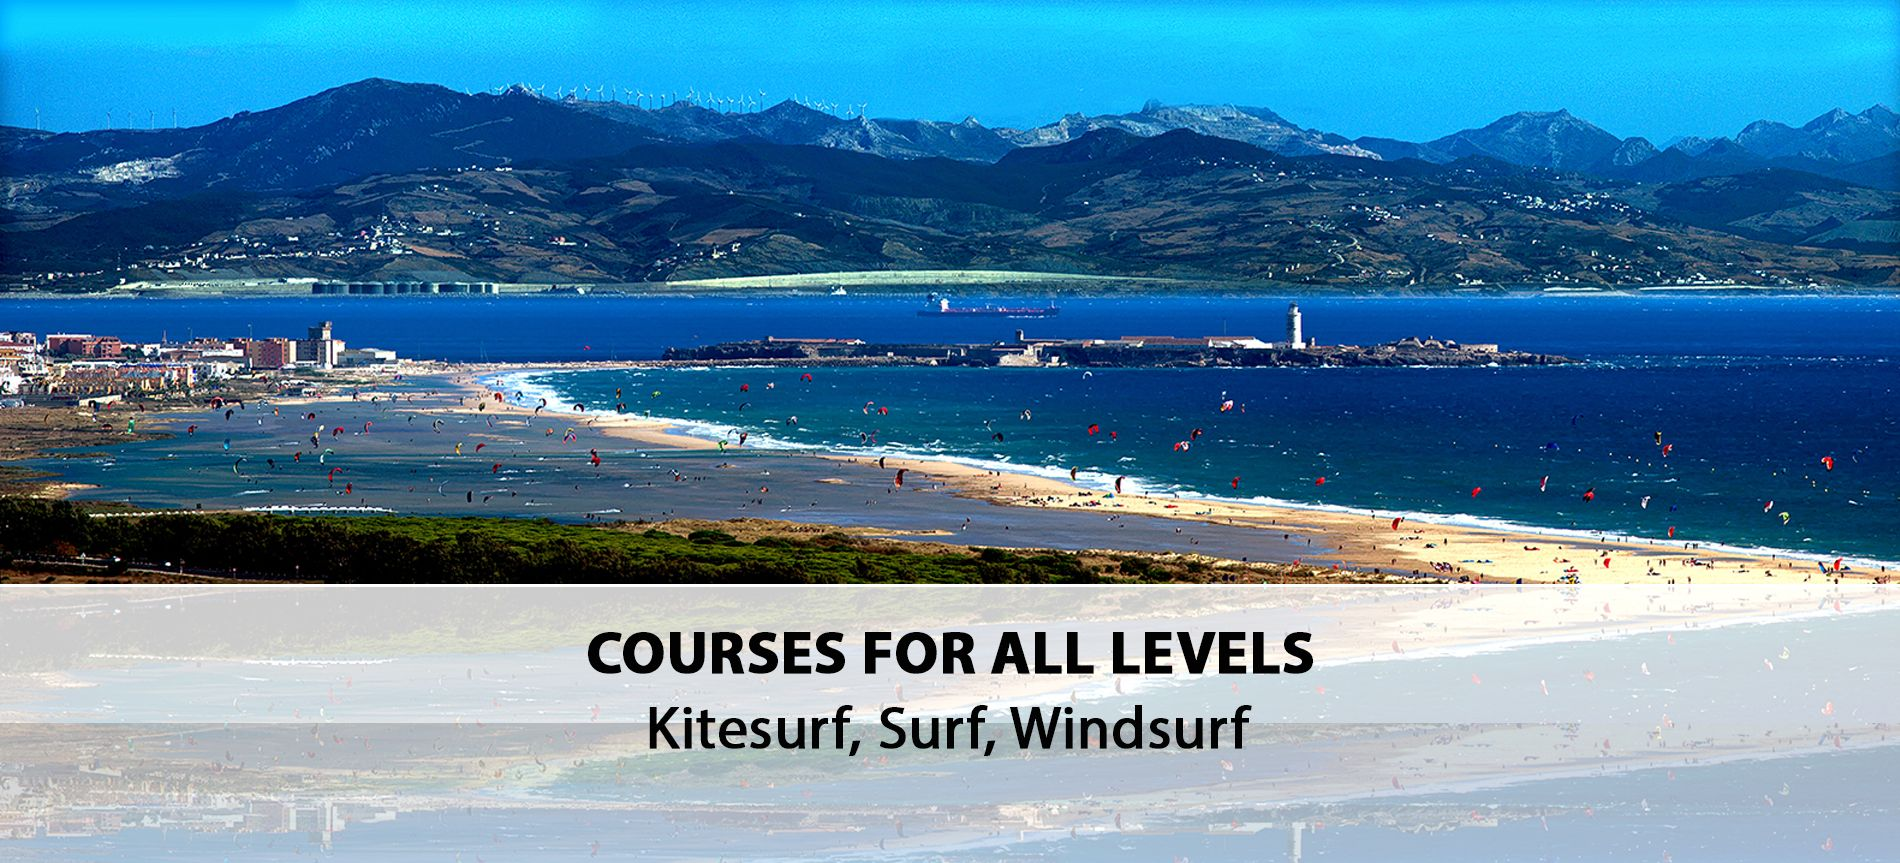 kite-local-school-tarifa-COURSES-kite-surf-windsurf-EN